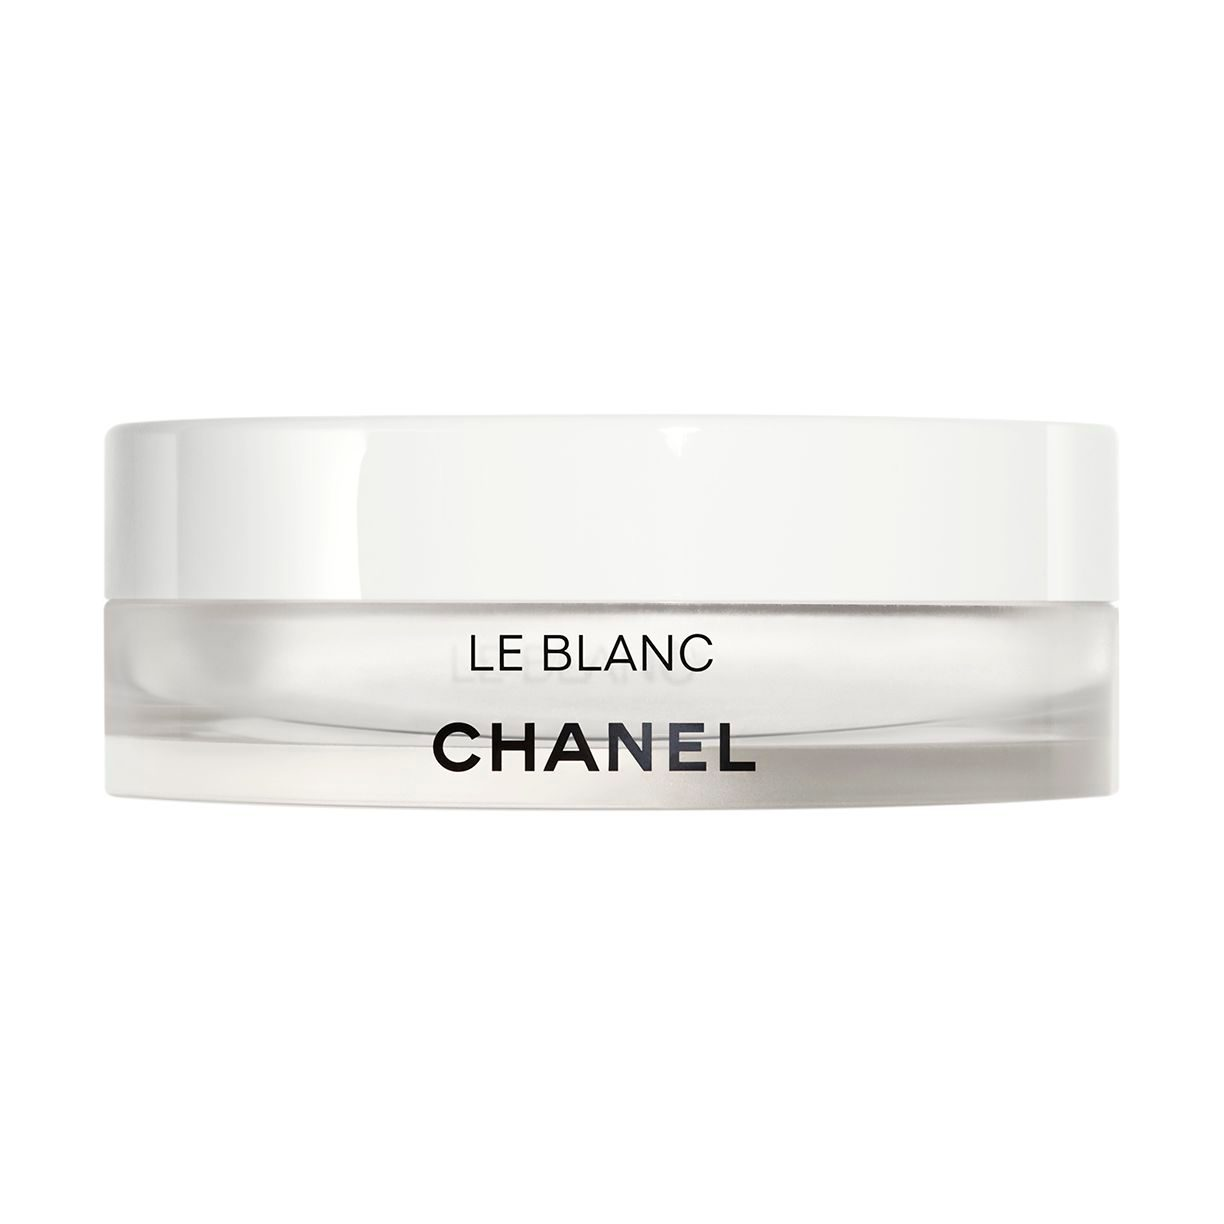 LE BLANC PEARL LIGHT BRIGHTENING LOOSE POWDER SPF 10 / PA+ 10 - CRISTALLINE